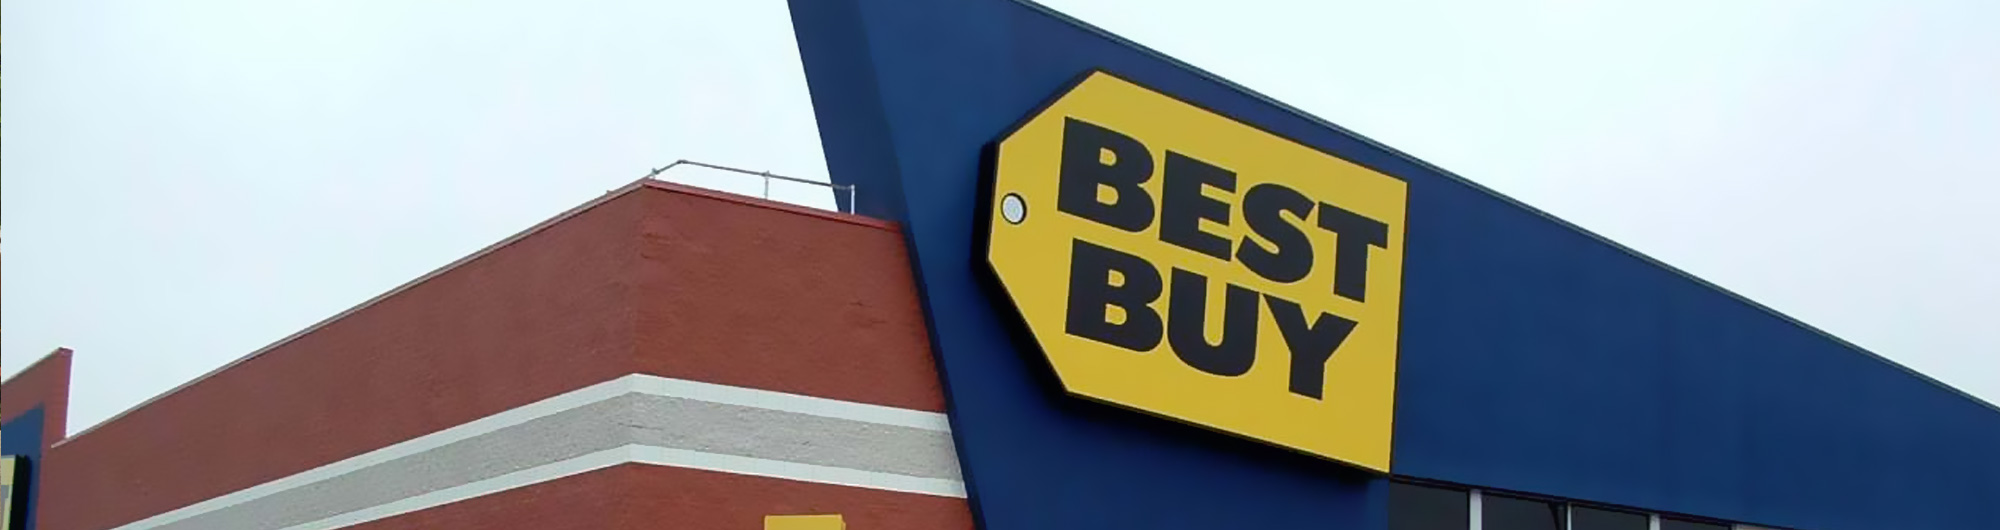 Best Buy vs Fix my PC Store